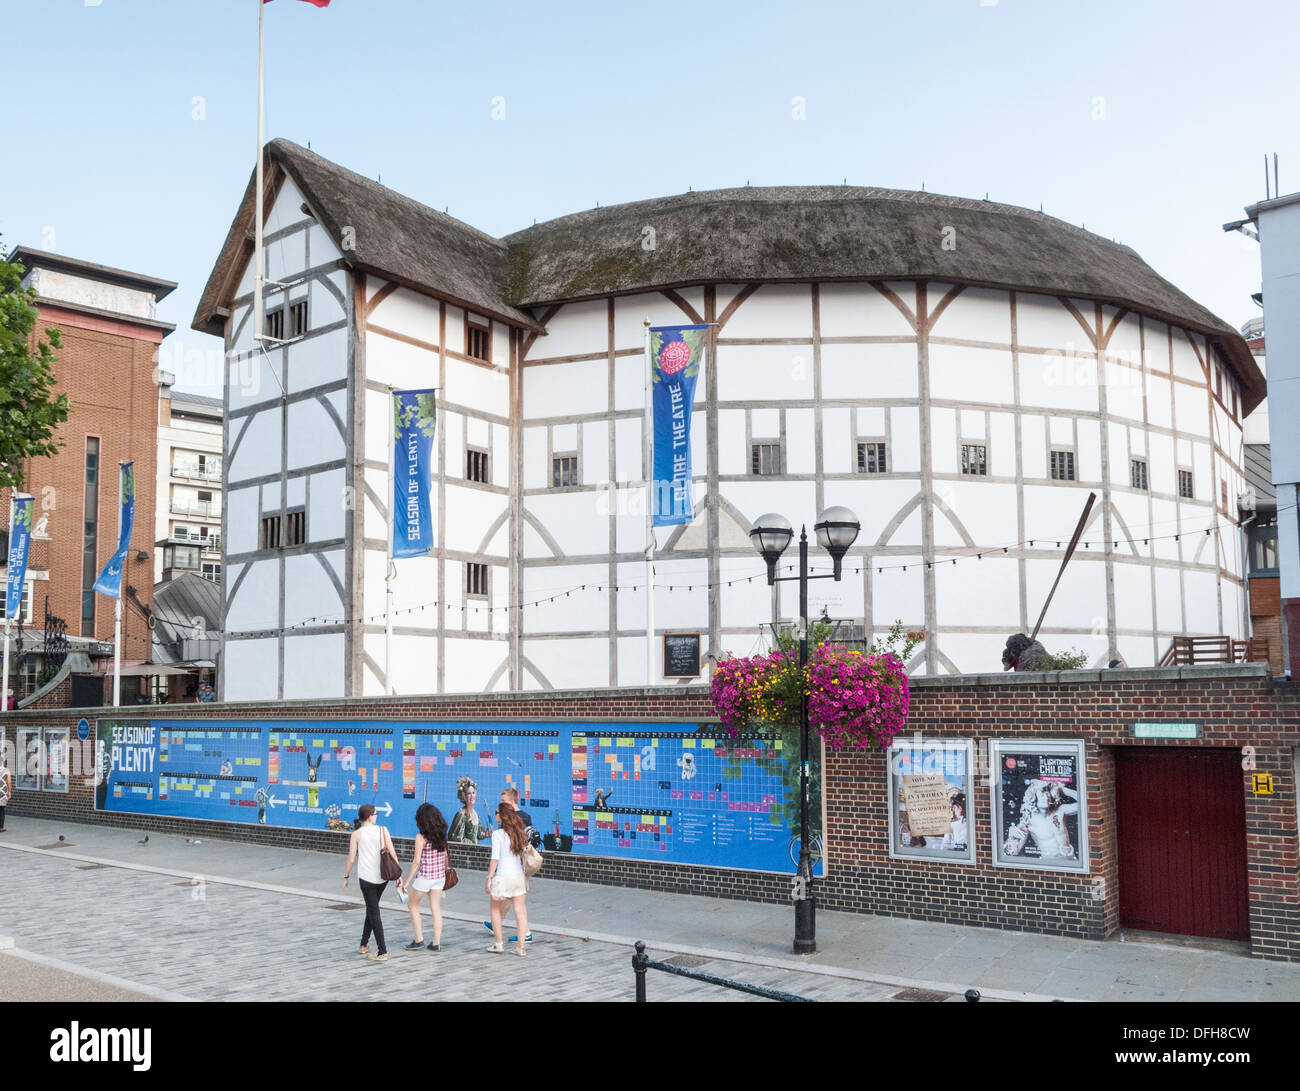 Globe Theatre, which hosts performances of William Shakespeare's plays in the round, on the South Bank, Embankment, London, UK - Stock Image